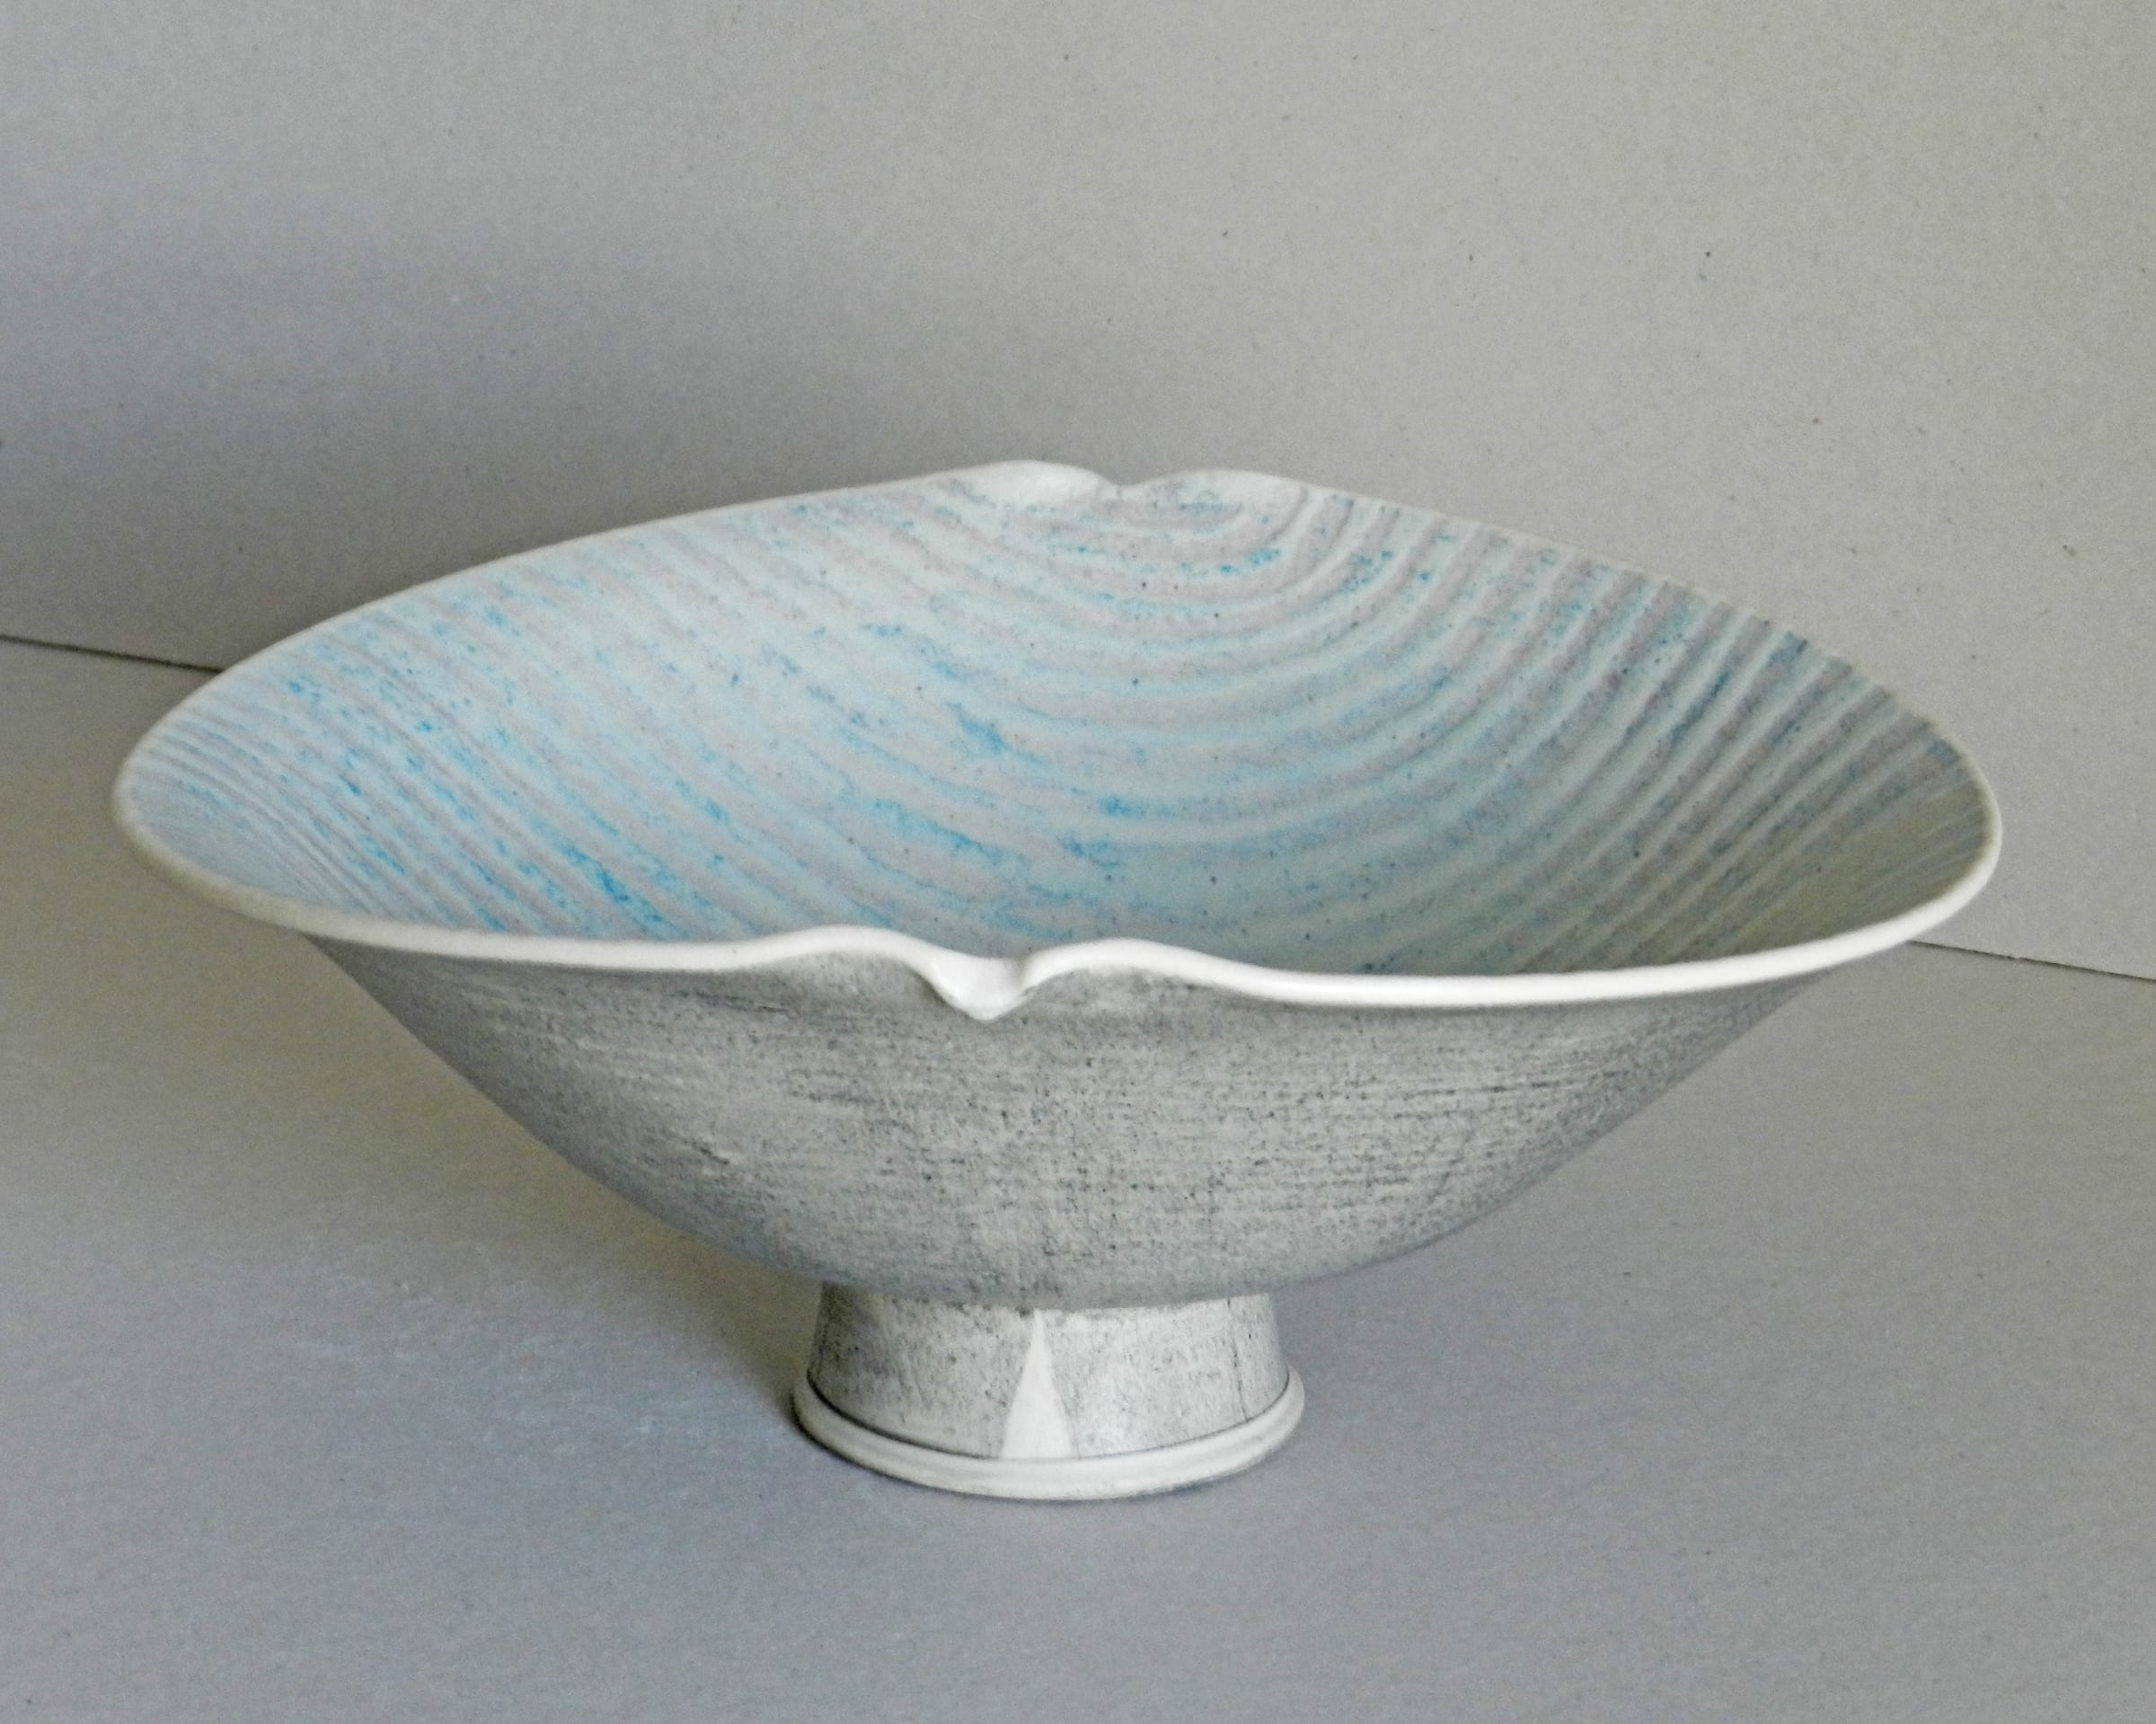 """<span class=""""link fancybox-details-link""""><a href=""""/artists/243-christine-feiler/works/6872-christine-feiler-pedestal-bowl-2019/"""">View Detail Page</a></span><div class=""""artist""""><strong>Christine Feiler</strong></div> b. 1948 <div class=""""title""""><em>Pedestal bowl</em>, 2019</div> <div class=""""signed_and_dated"""">Ceramicist mark on base</div> <div class=""""medium"""">Stoneware with enamels</div><div class=""""price"""">£320.00</div><div class=""""copyright_line"""">Copyright The Artist</div>"""